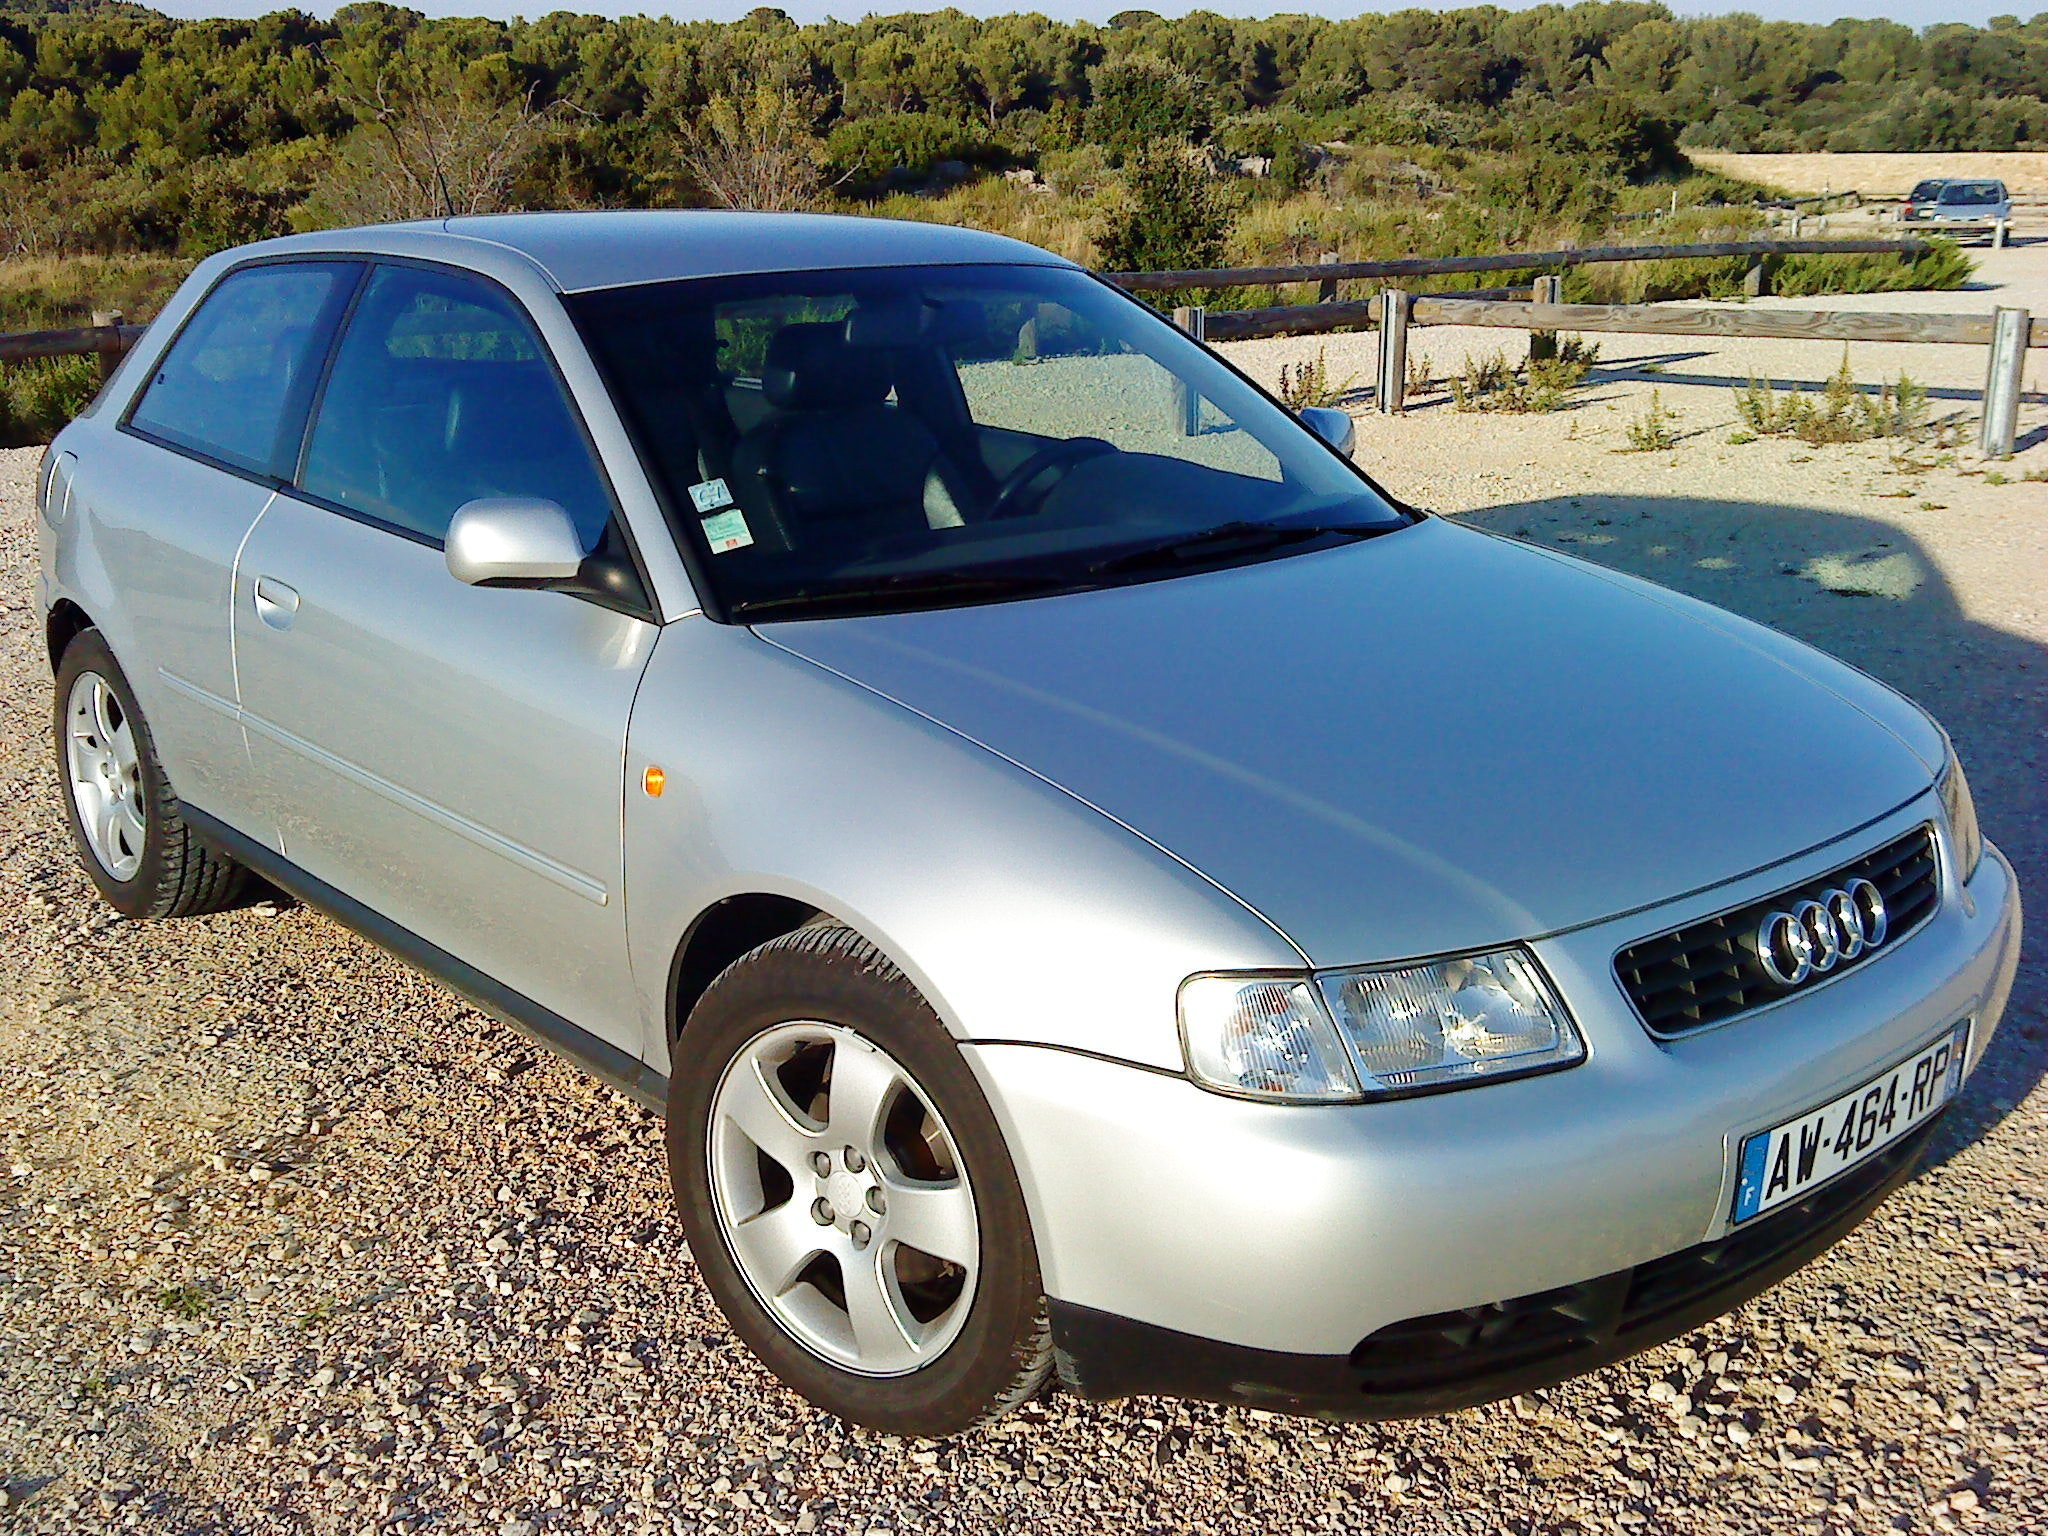 Audi A3 Ambition luxe 1.9 TDI, 1999, Diesel